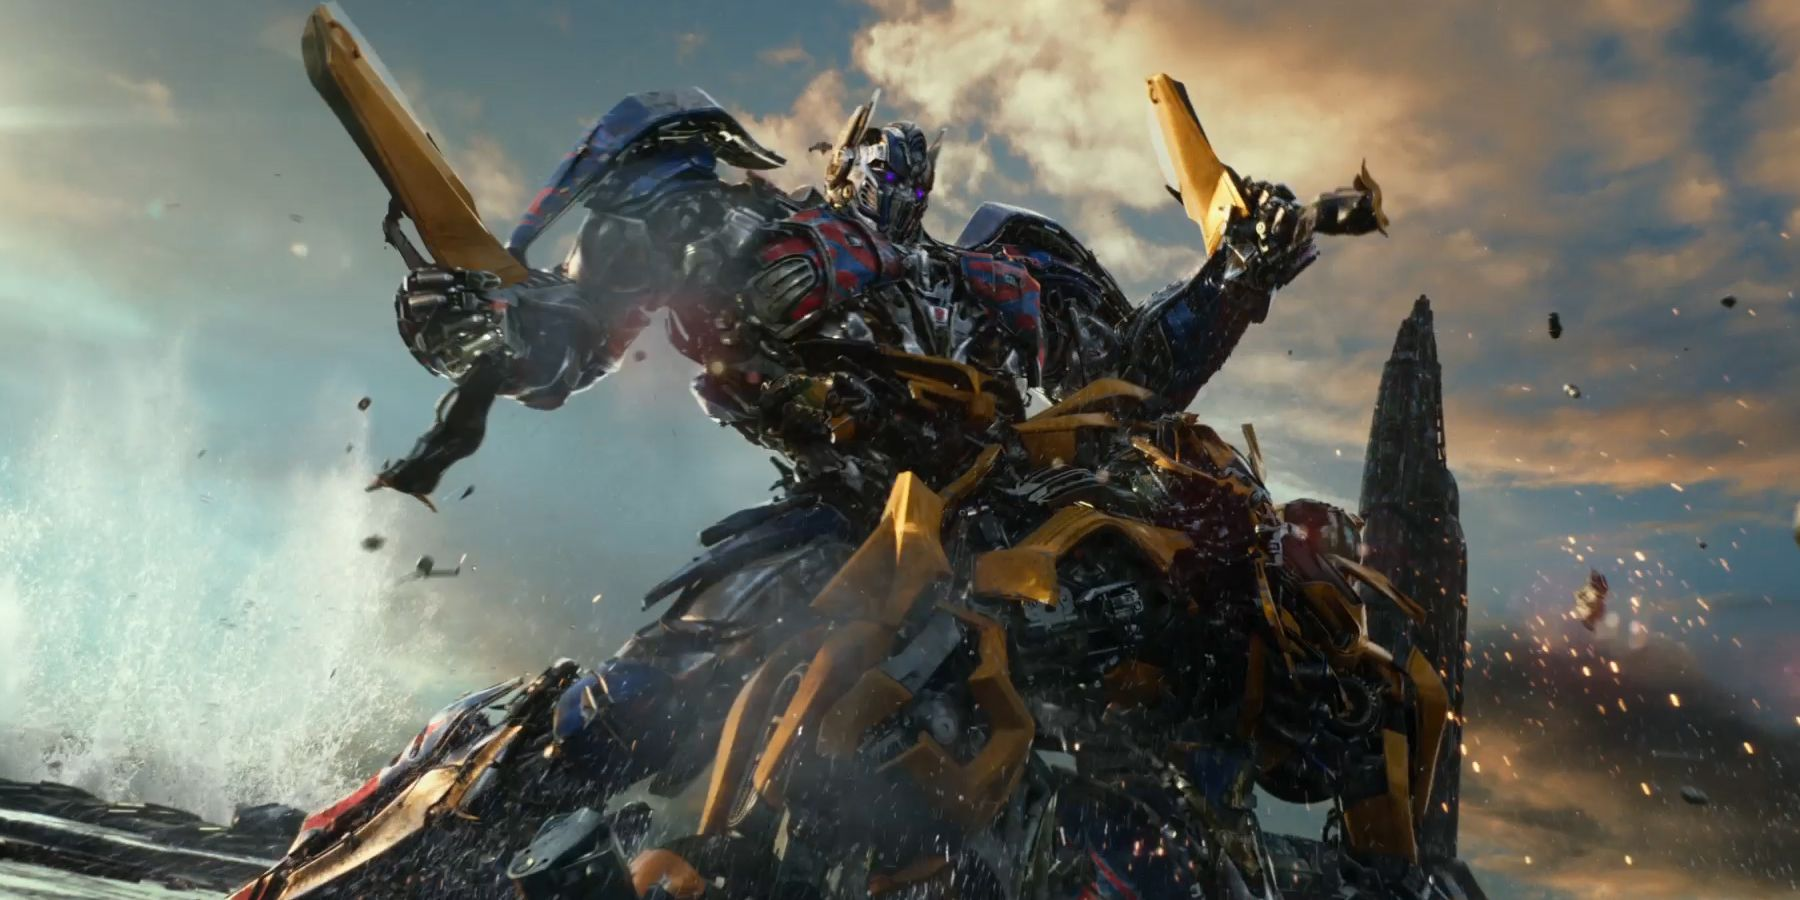 Transformers-The-Last-Knight-Optimus-Bumblebee-fight.jpg